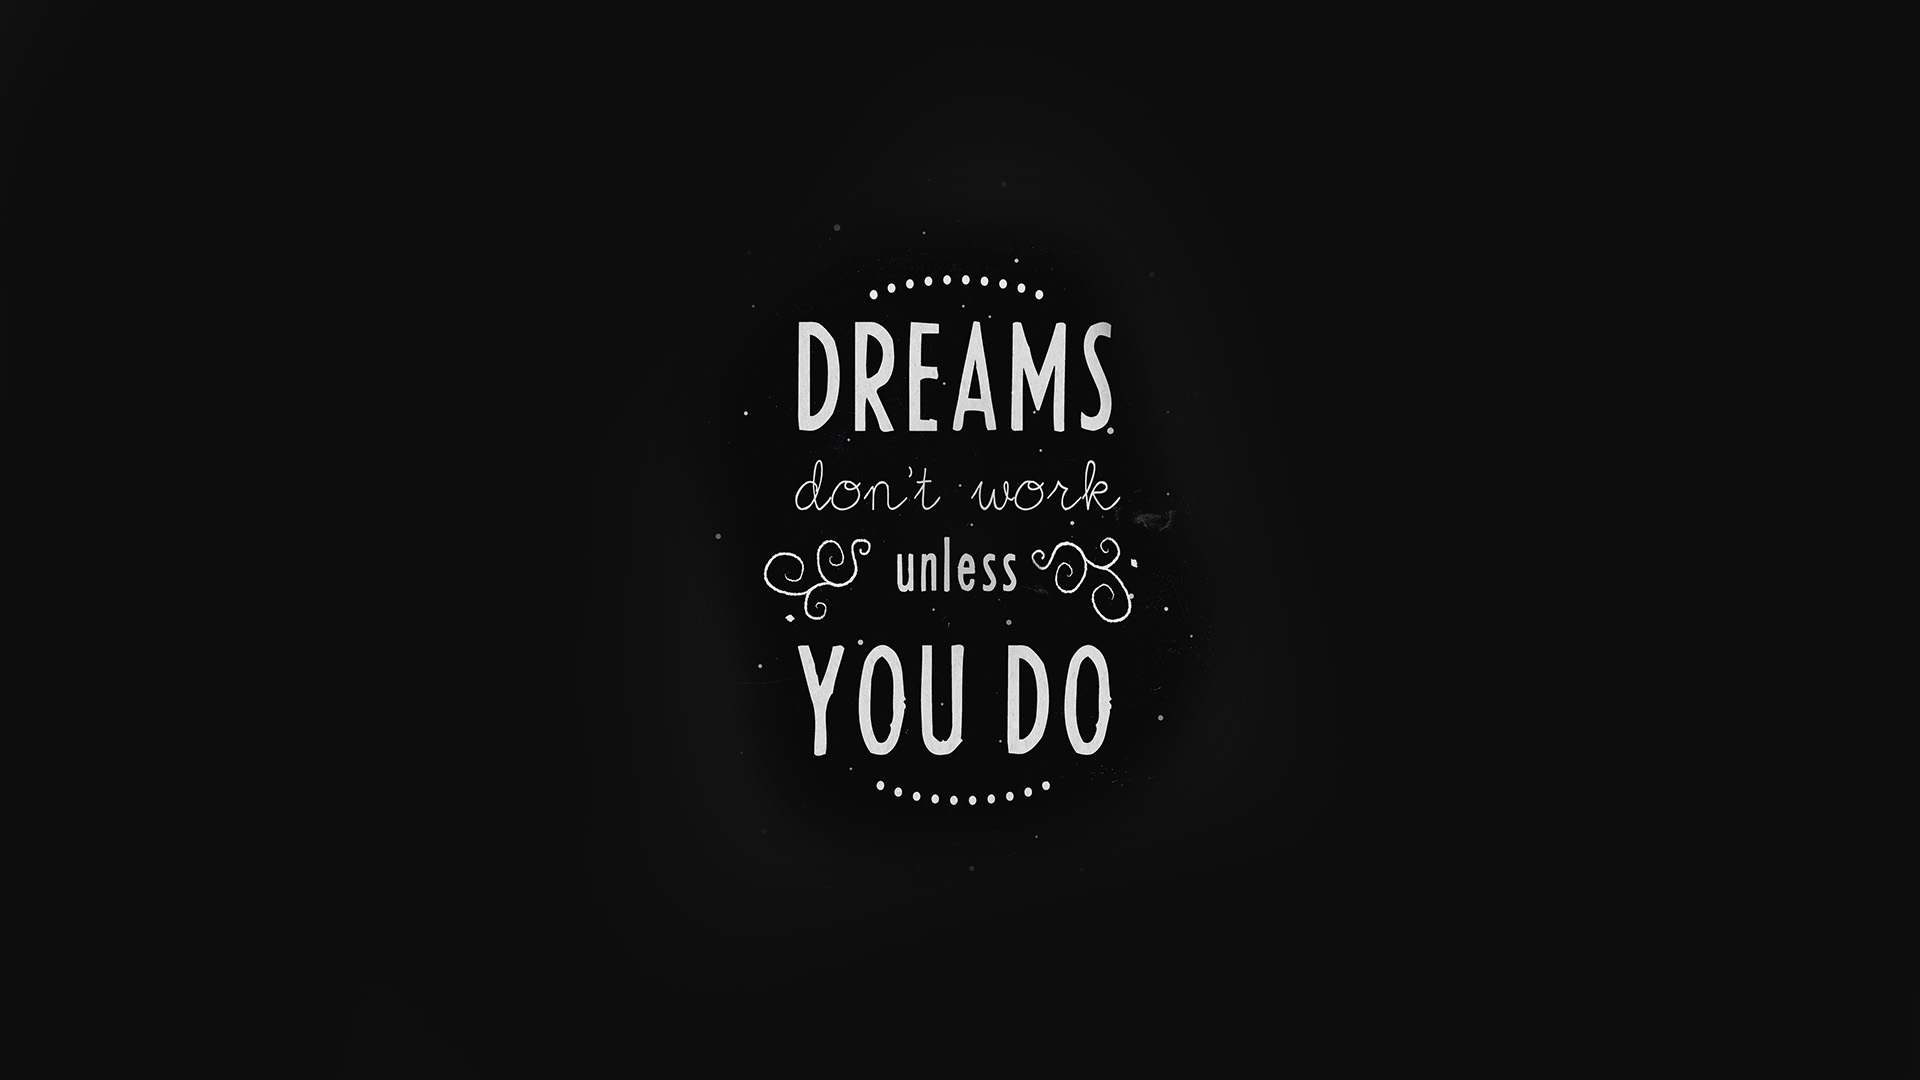 Dreams dont work unless you do hd typography 4k wallpapers images dreams dont work unless you do altavistaventures Image collections